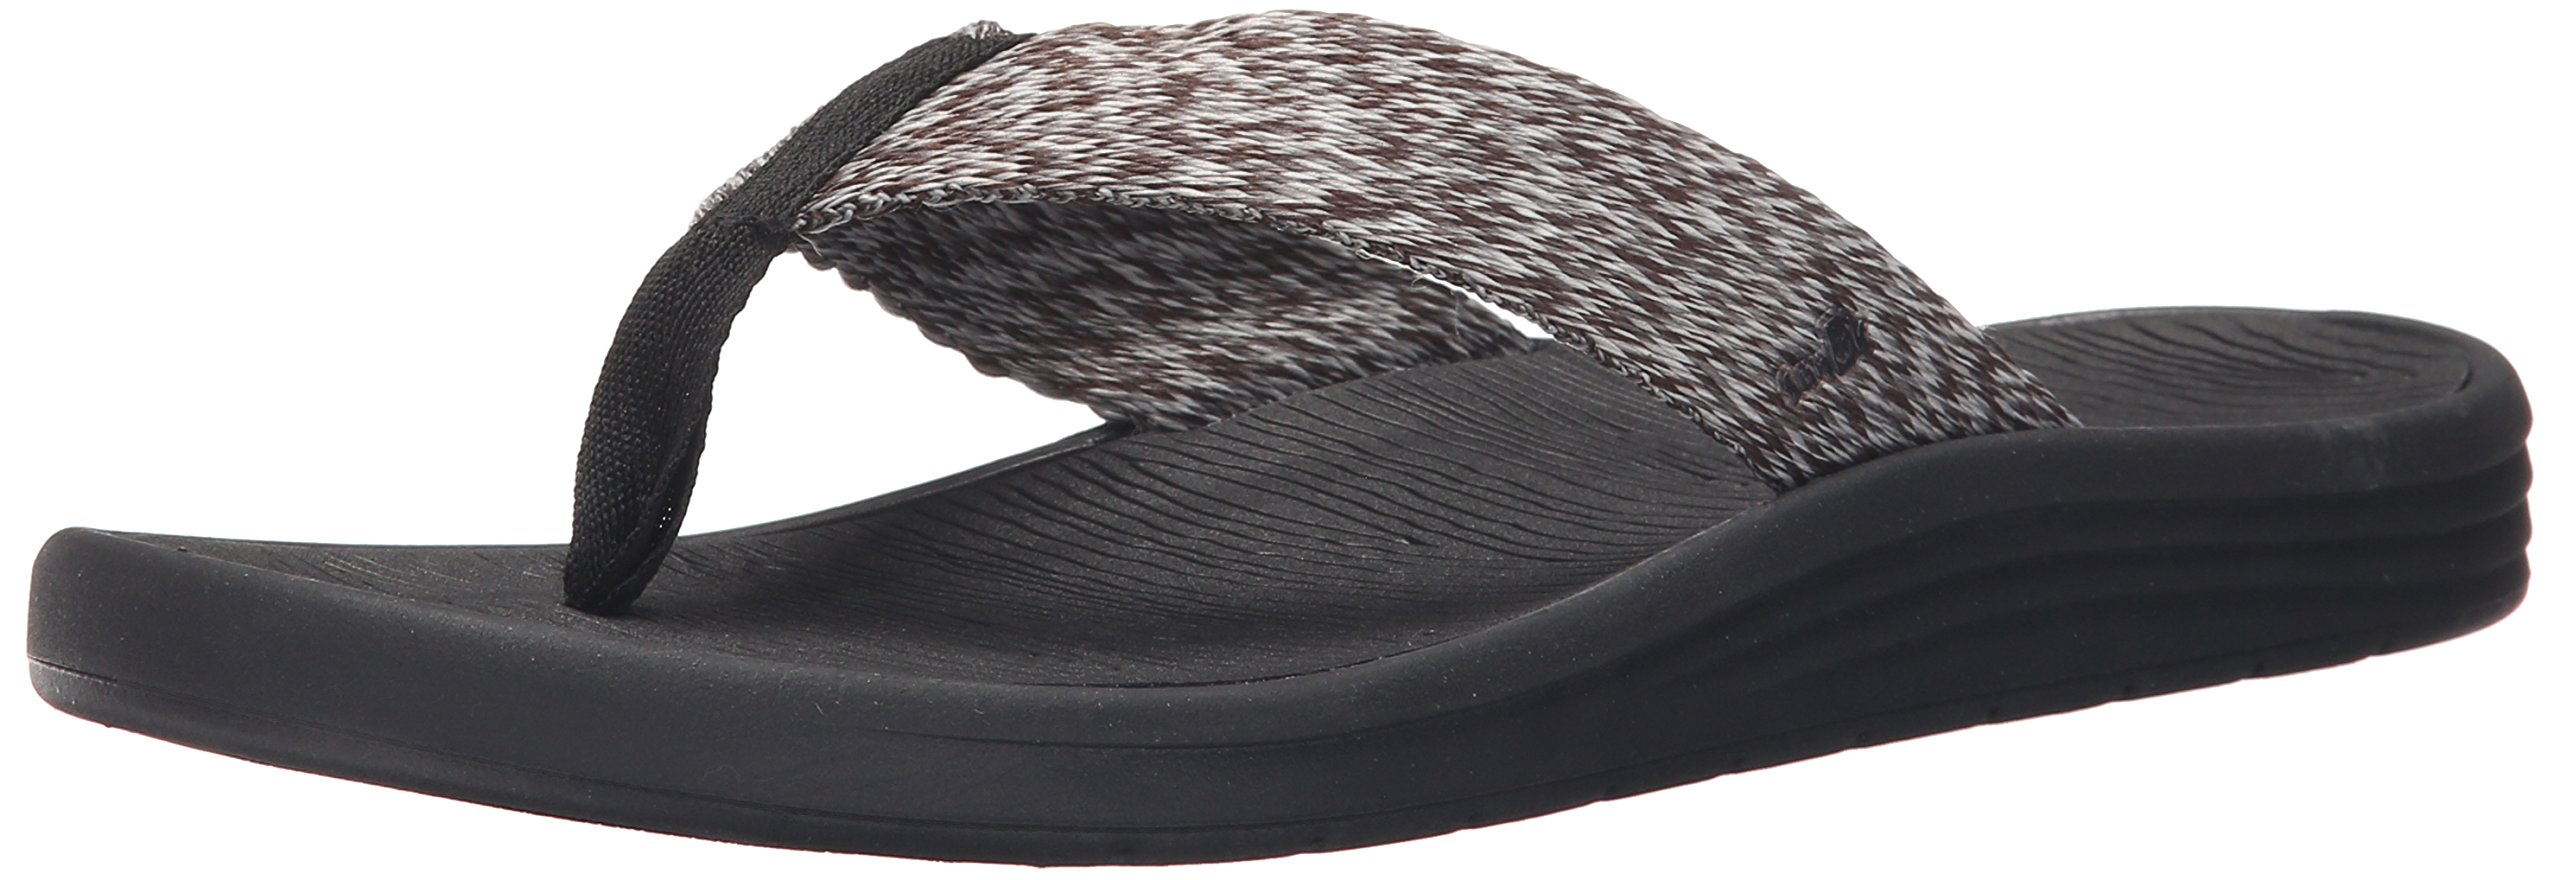 Sanuk Men's Compass Webbing Flip Flop, Black/Charcoal/Grey, 14 M US